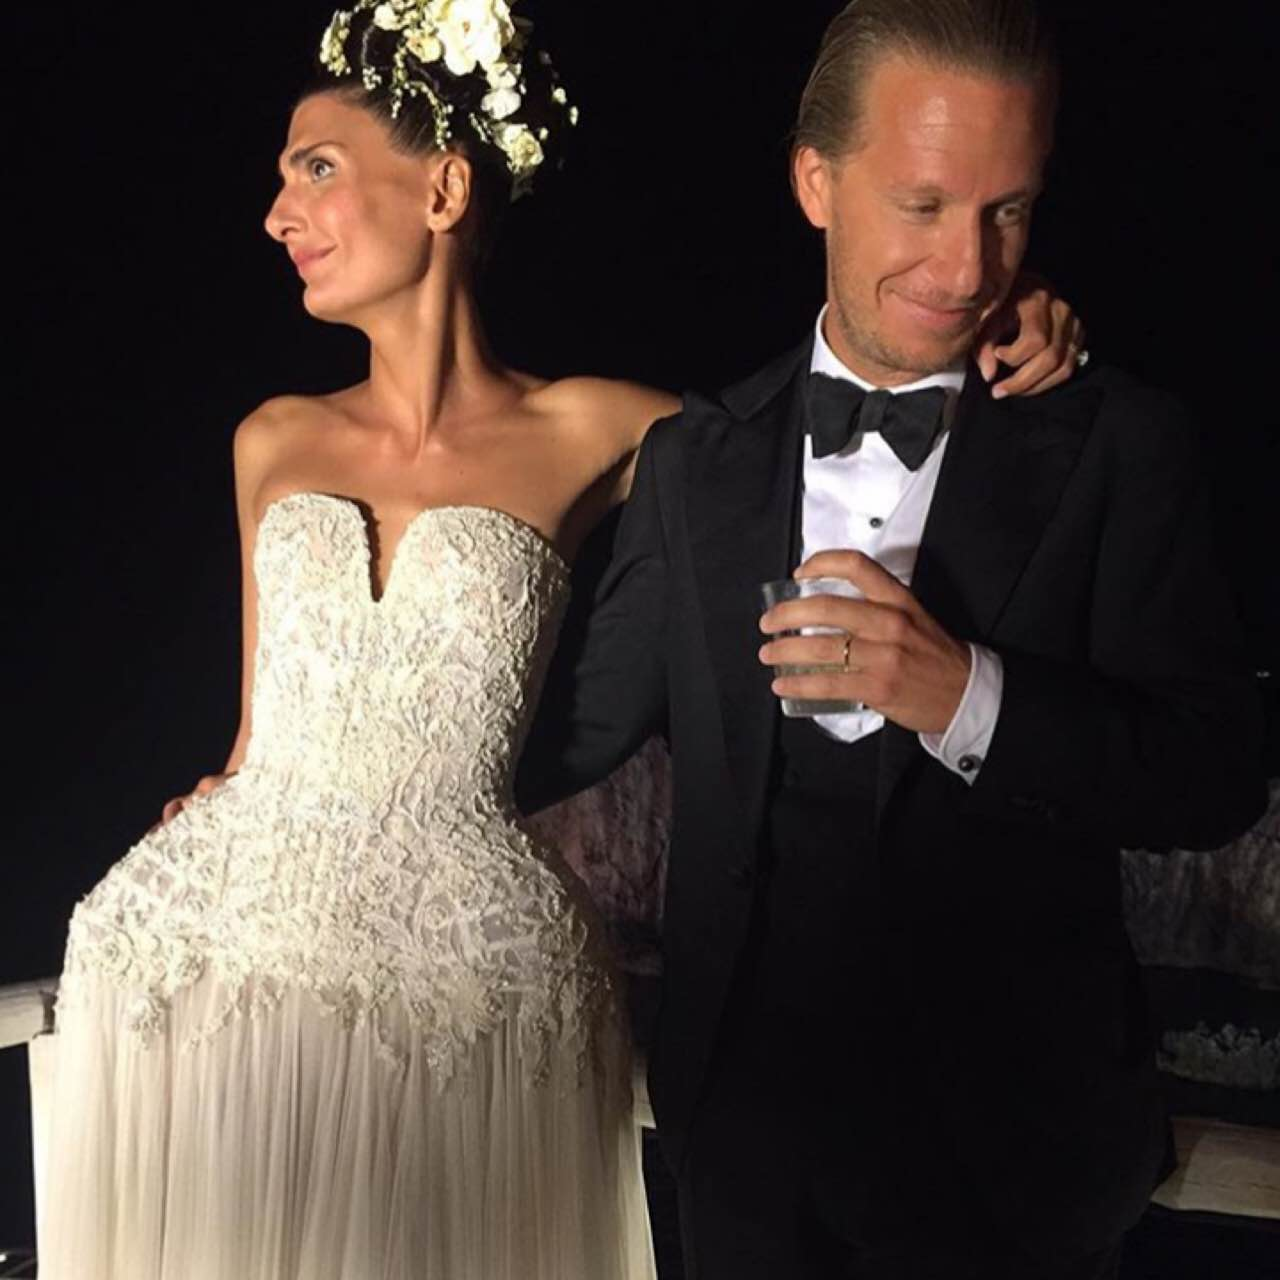 Giovanna-Battaglia-wedding-dress-alexander-mcqueen